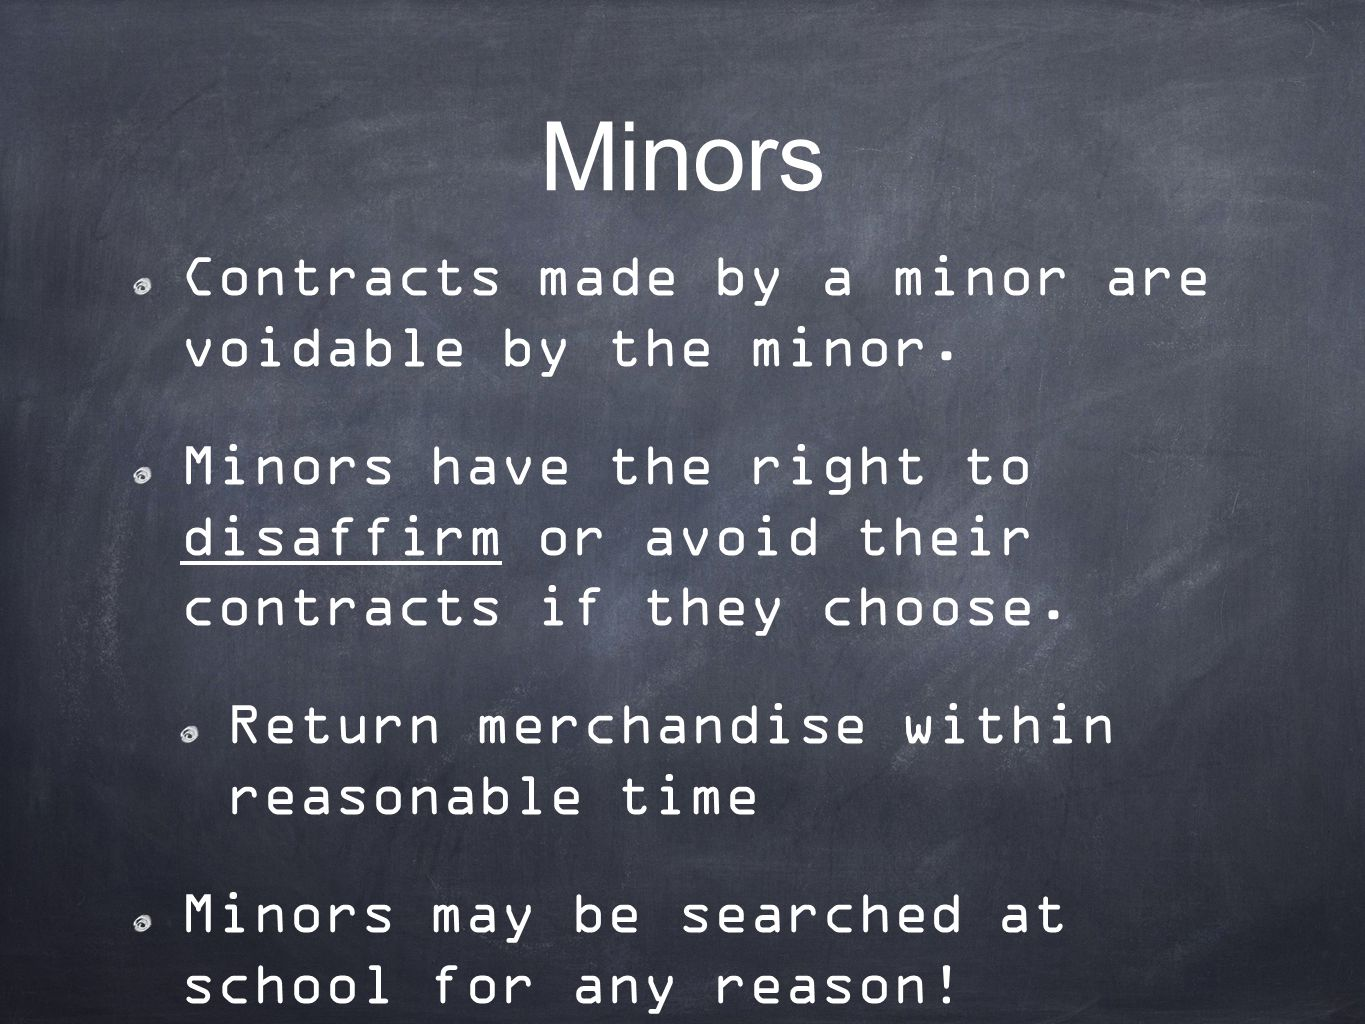 Minors Contracts made by a minor are voidable by the minor.